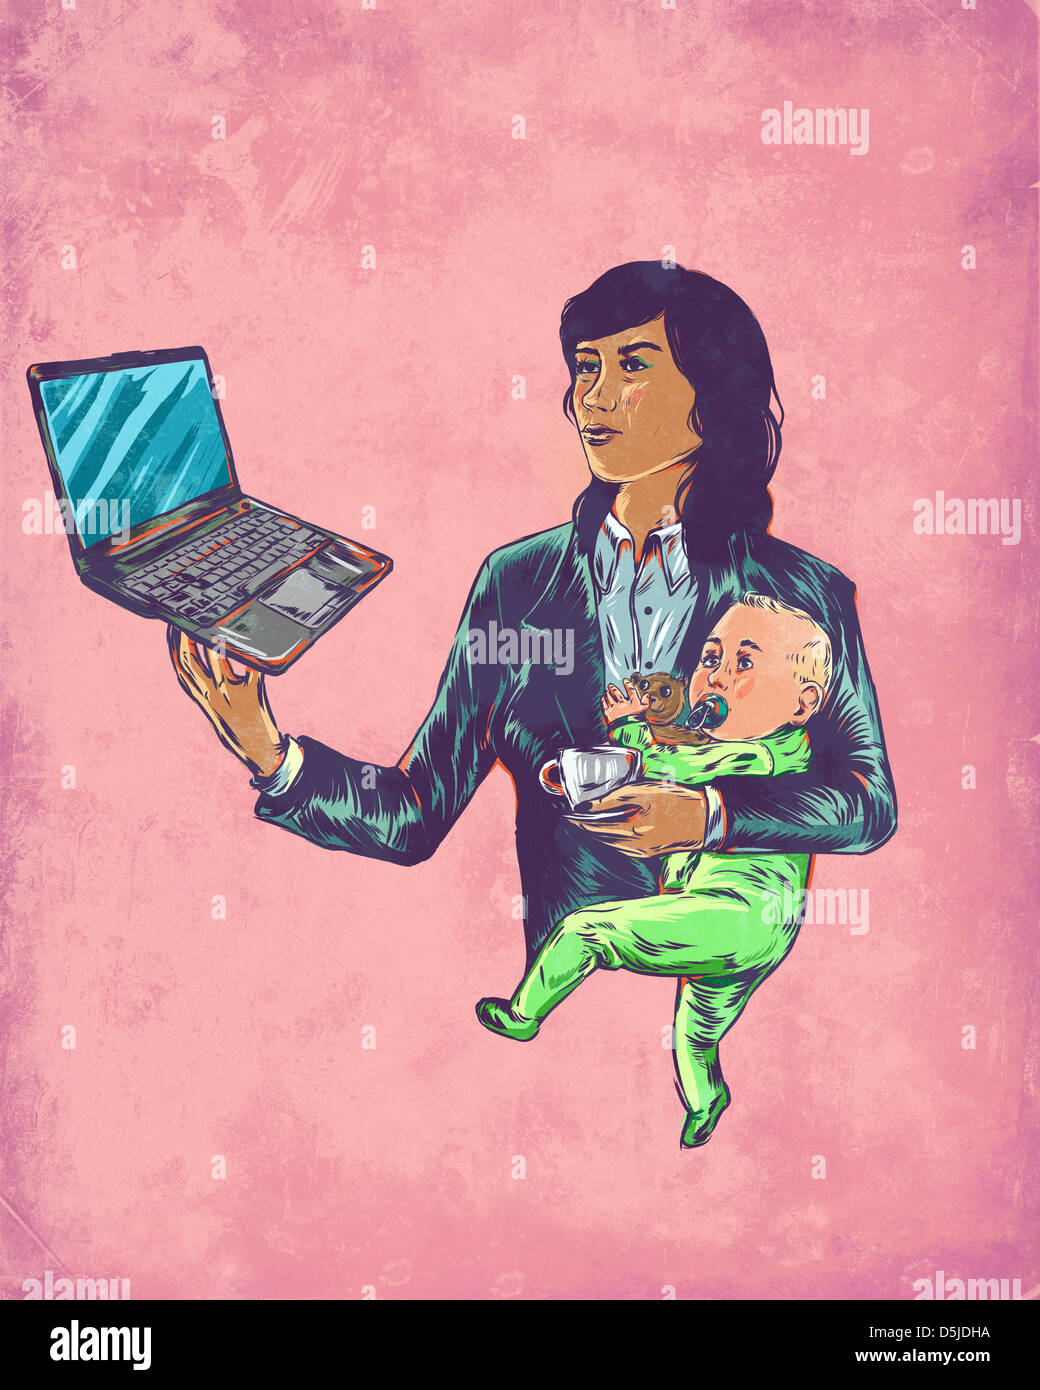 Illustrative image of businesswoman carrying baby while using laptop representing multi tasking - Stock Image